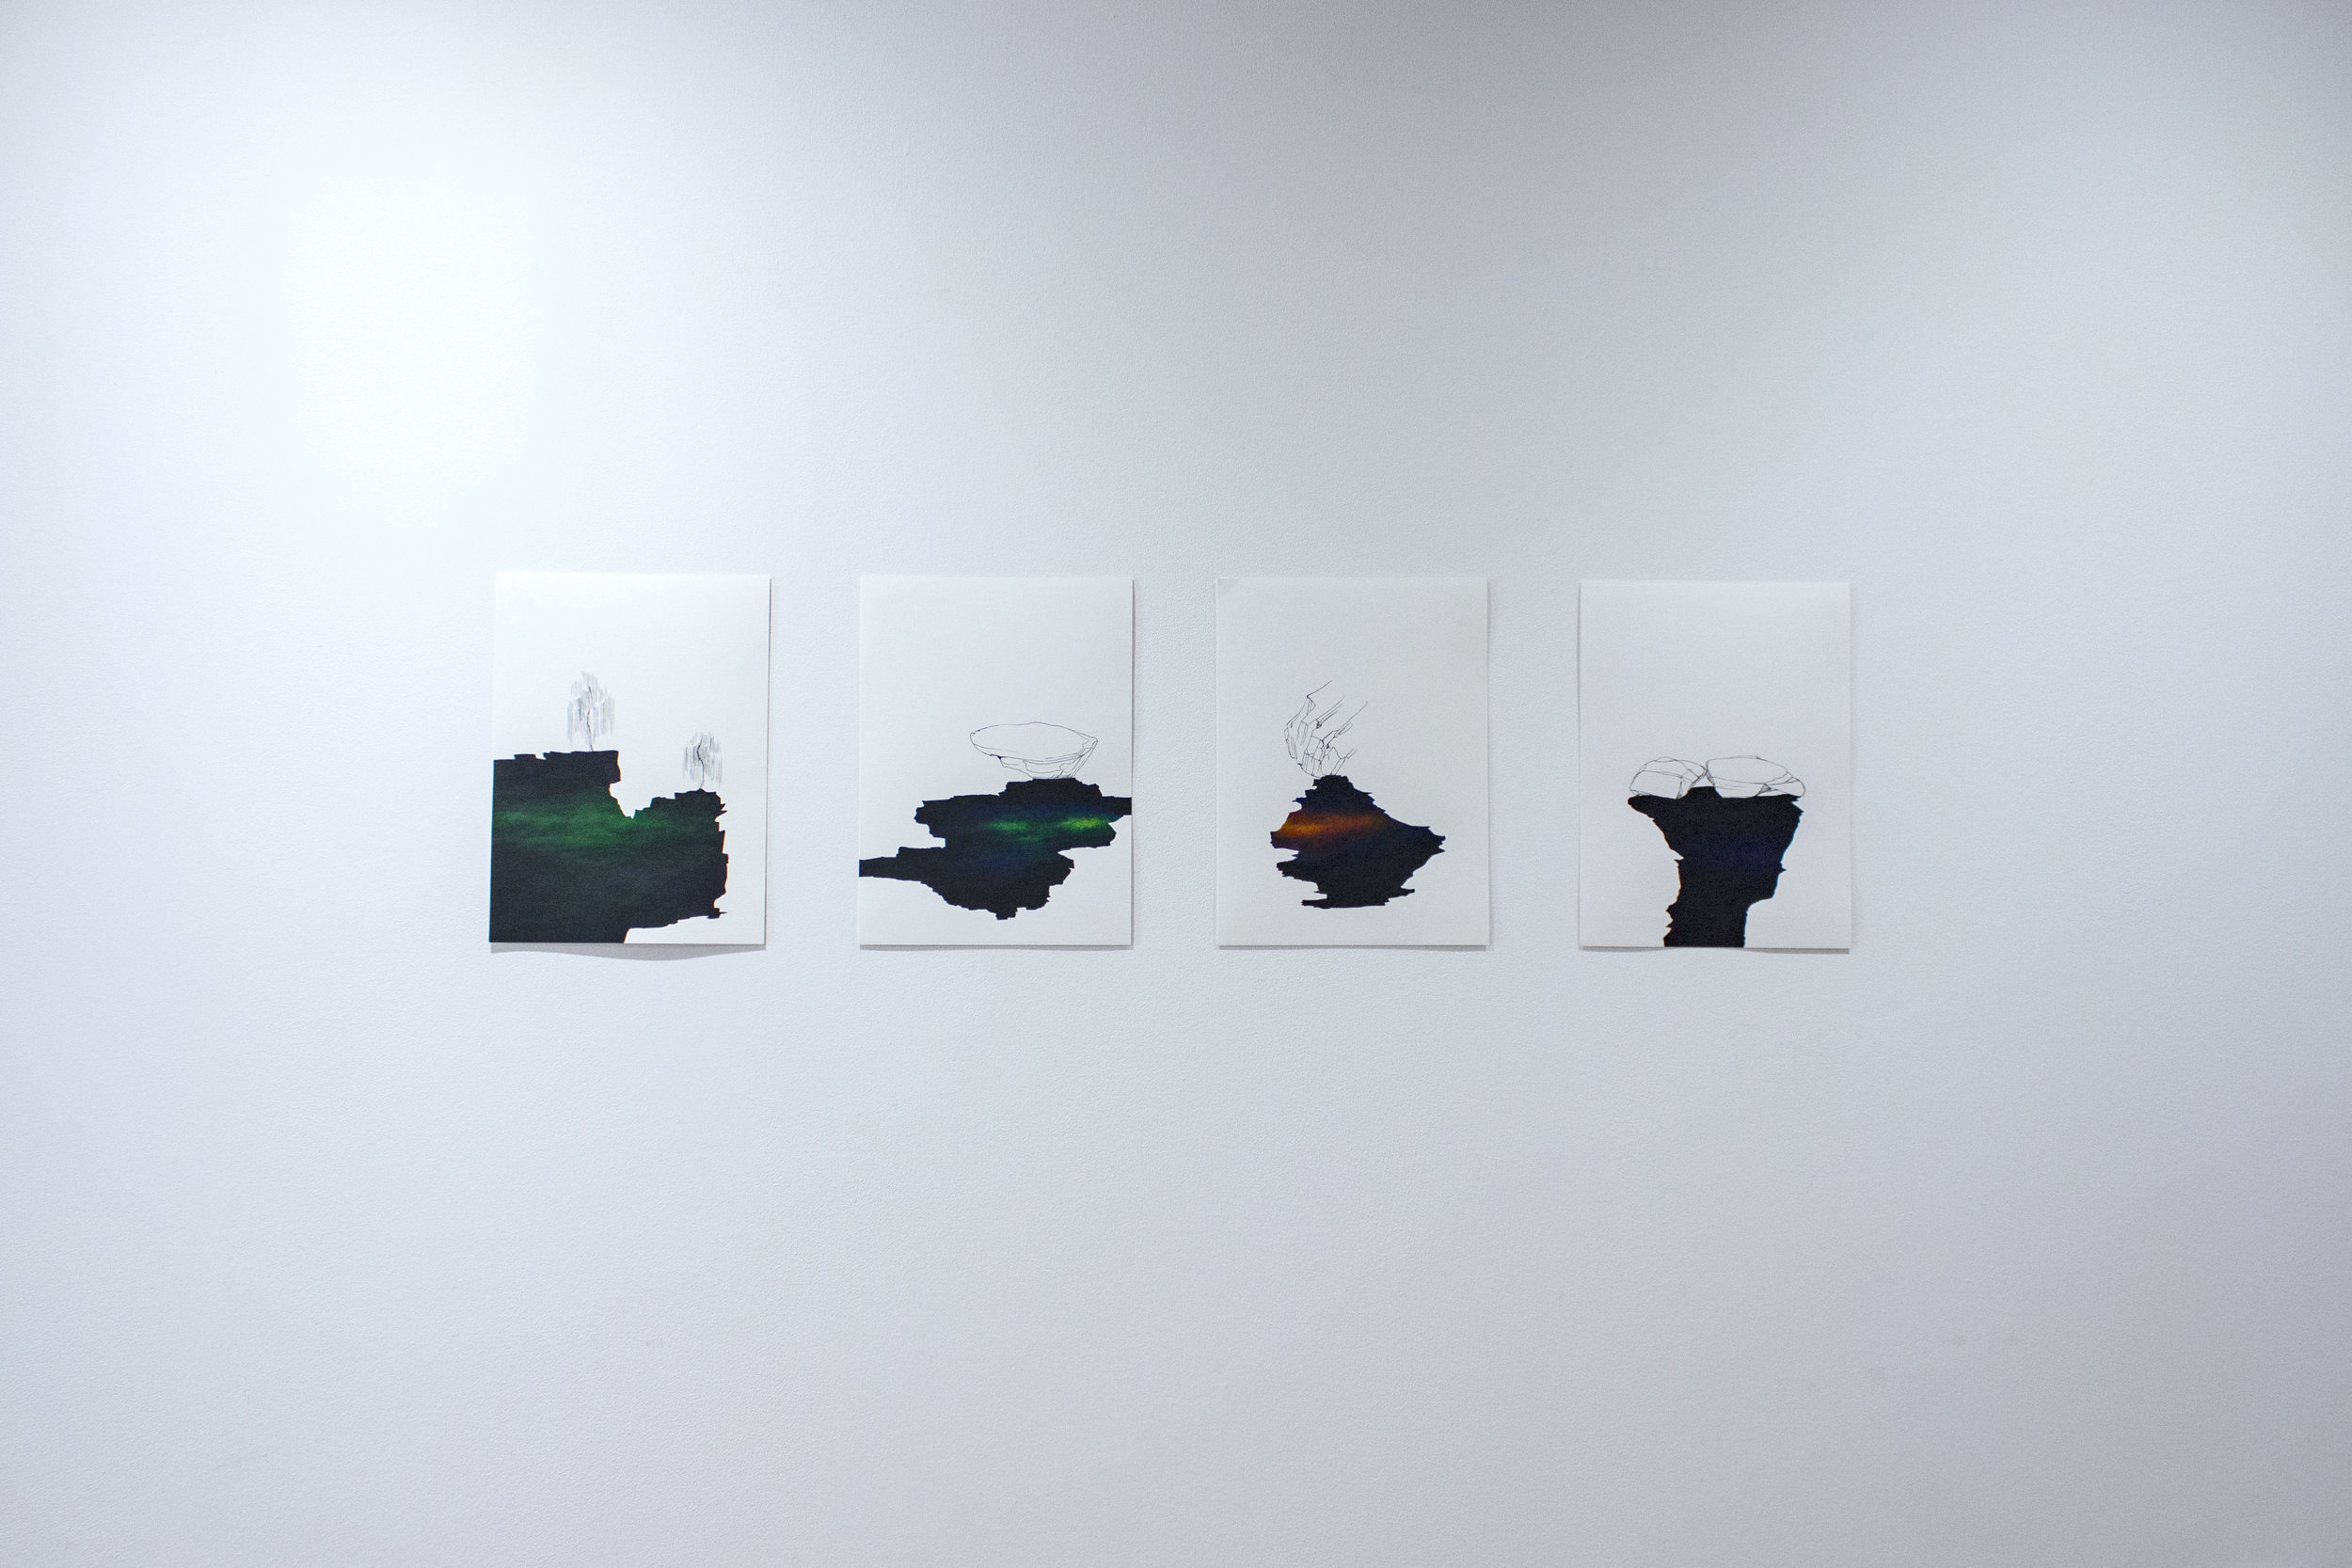 spills  (1) a tree made for drawing  (2) an exercise in balance in green  (3) unbuilt, unbuildable  (4) cold water